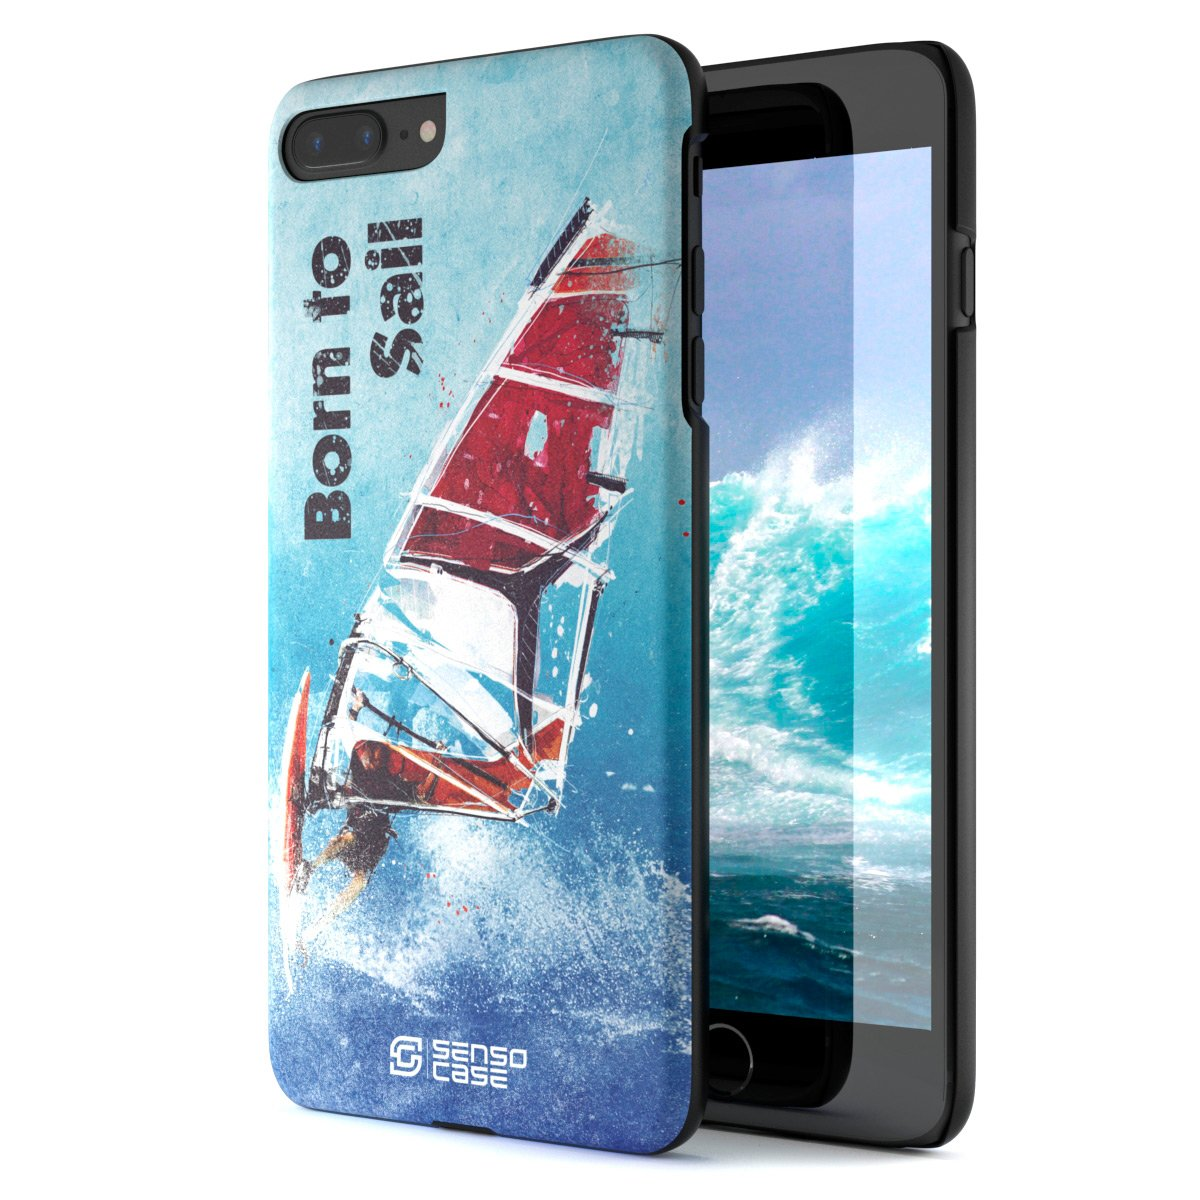 iPhone 7/8 Plus Case, Born For Windsurfing. Sensocase Premium Extreme Sports Unique Designer Tough Shell Thin Cover. Luxury, Anti-Fingerprint, Anti-Scratch Stylish Slim Protective Apple Phone Case. by SENSOCASE